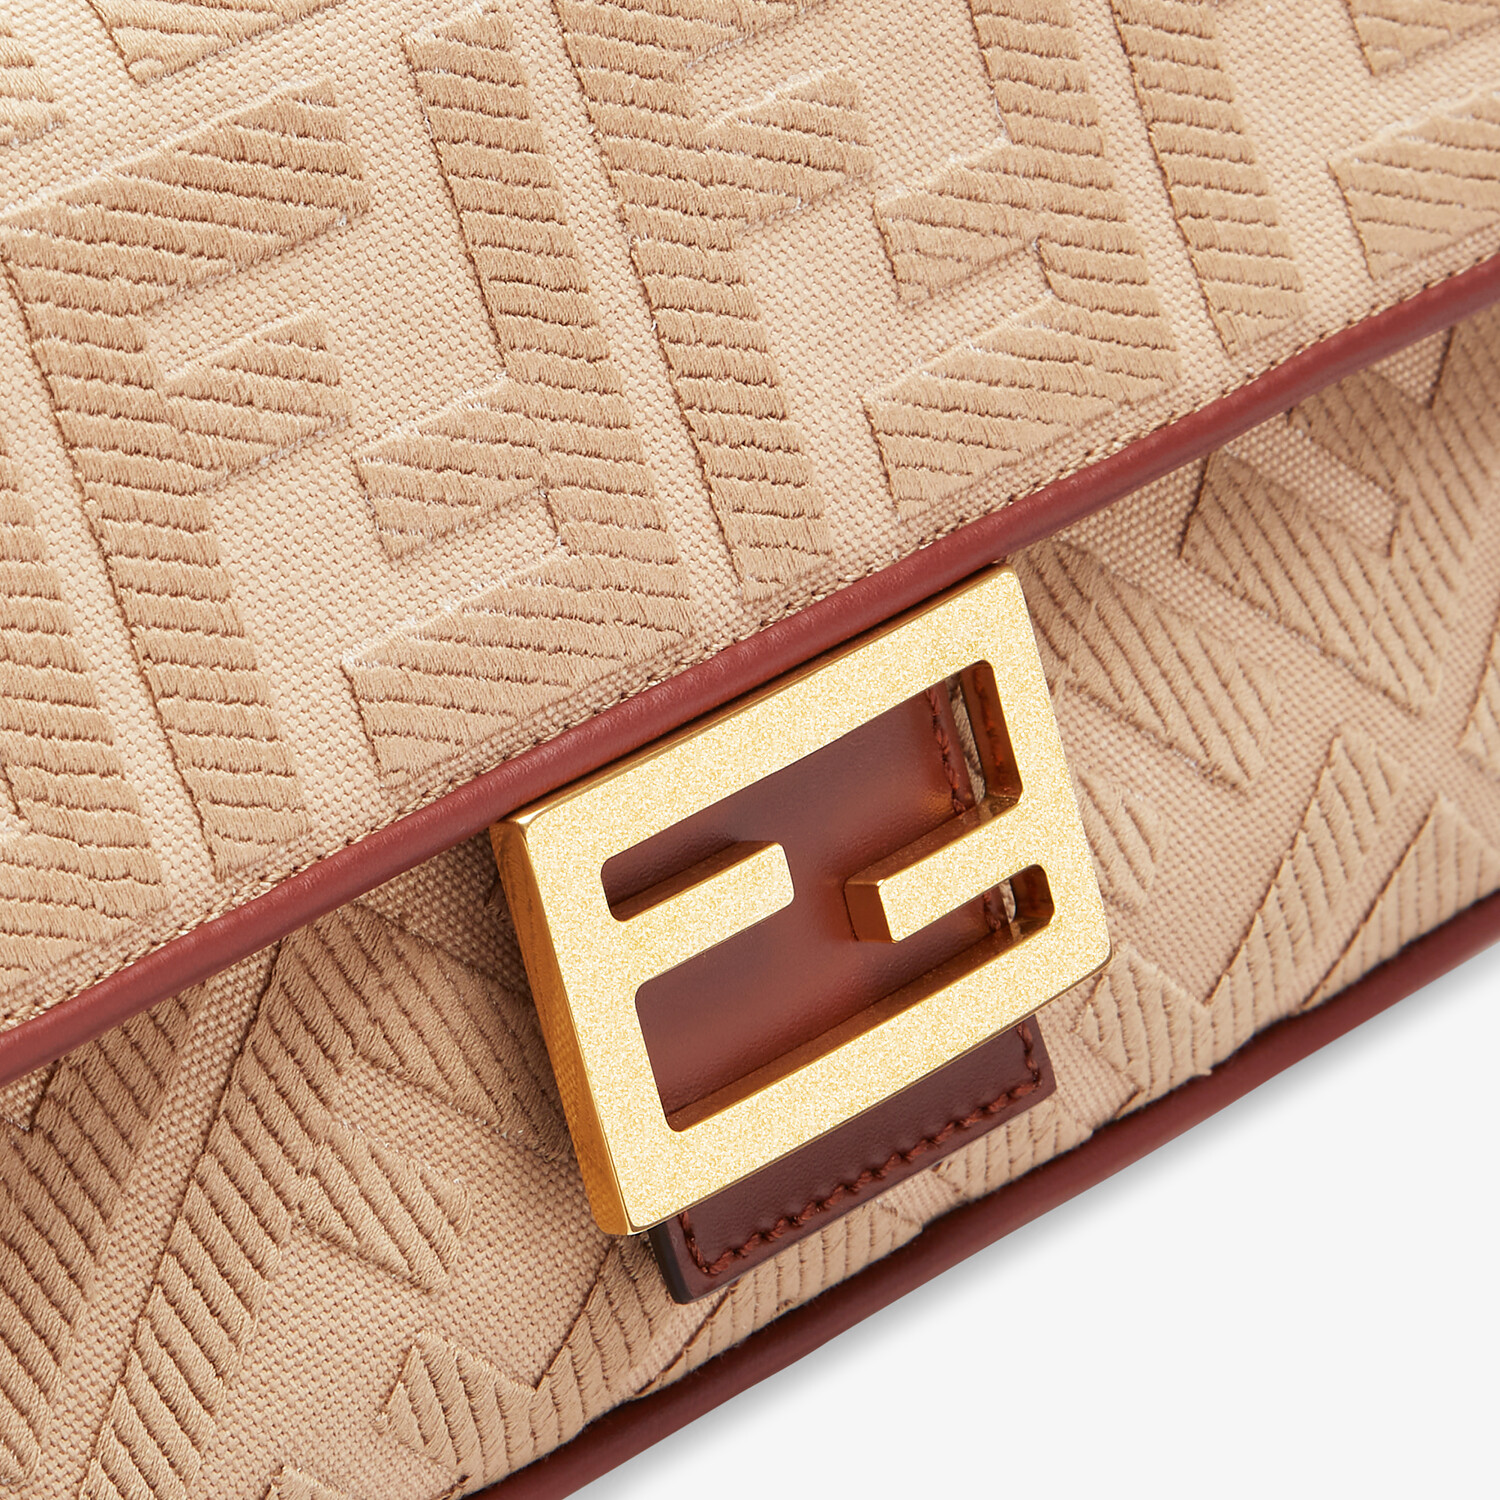 FENDI BAGUETTE - Beige FF canvas bag - view 5 detail